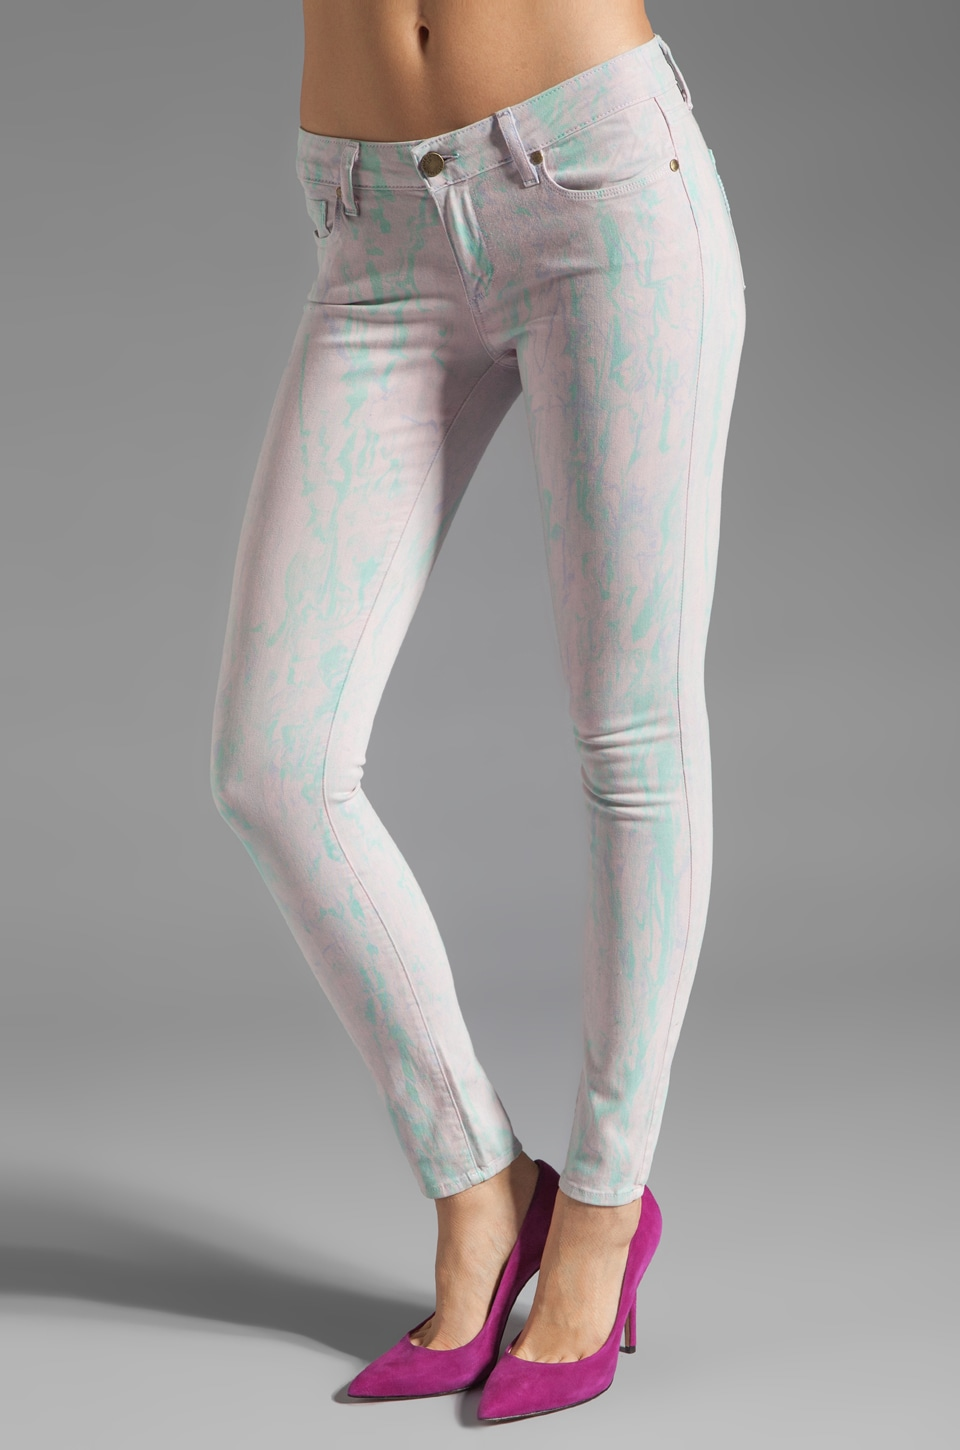 Paige Denim Verdugo Ultra Skinny in Candy